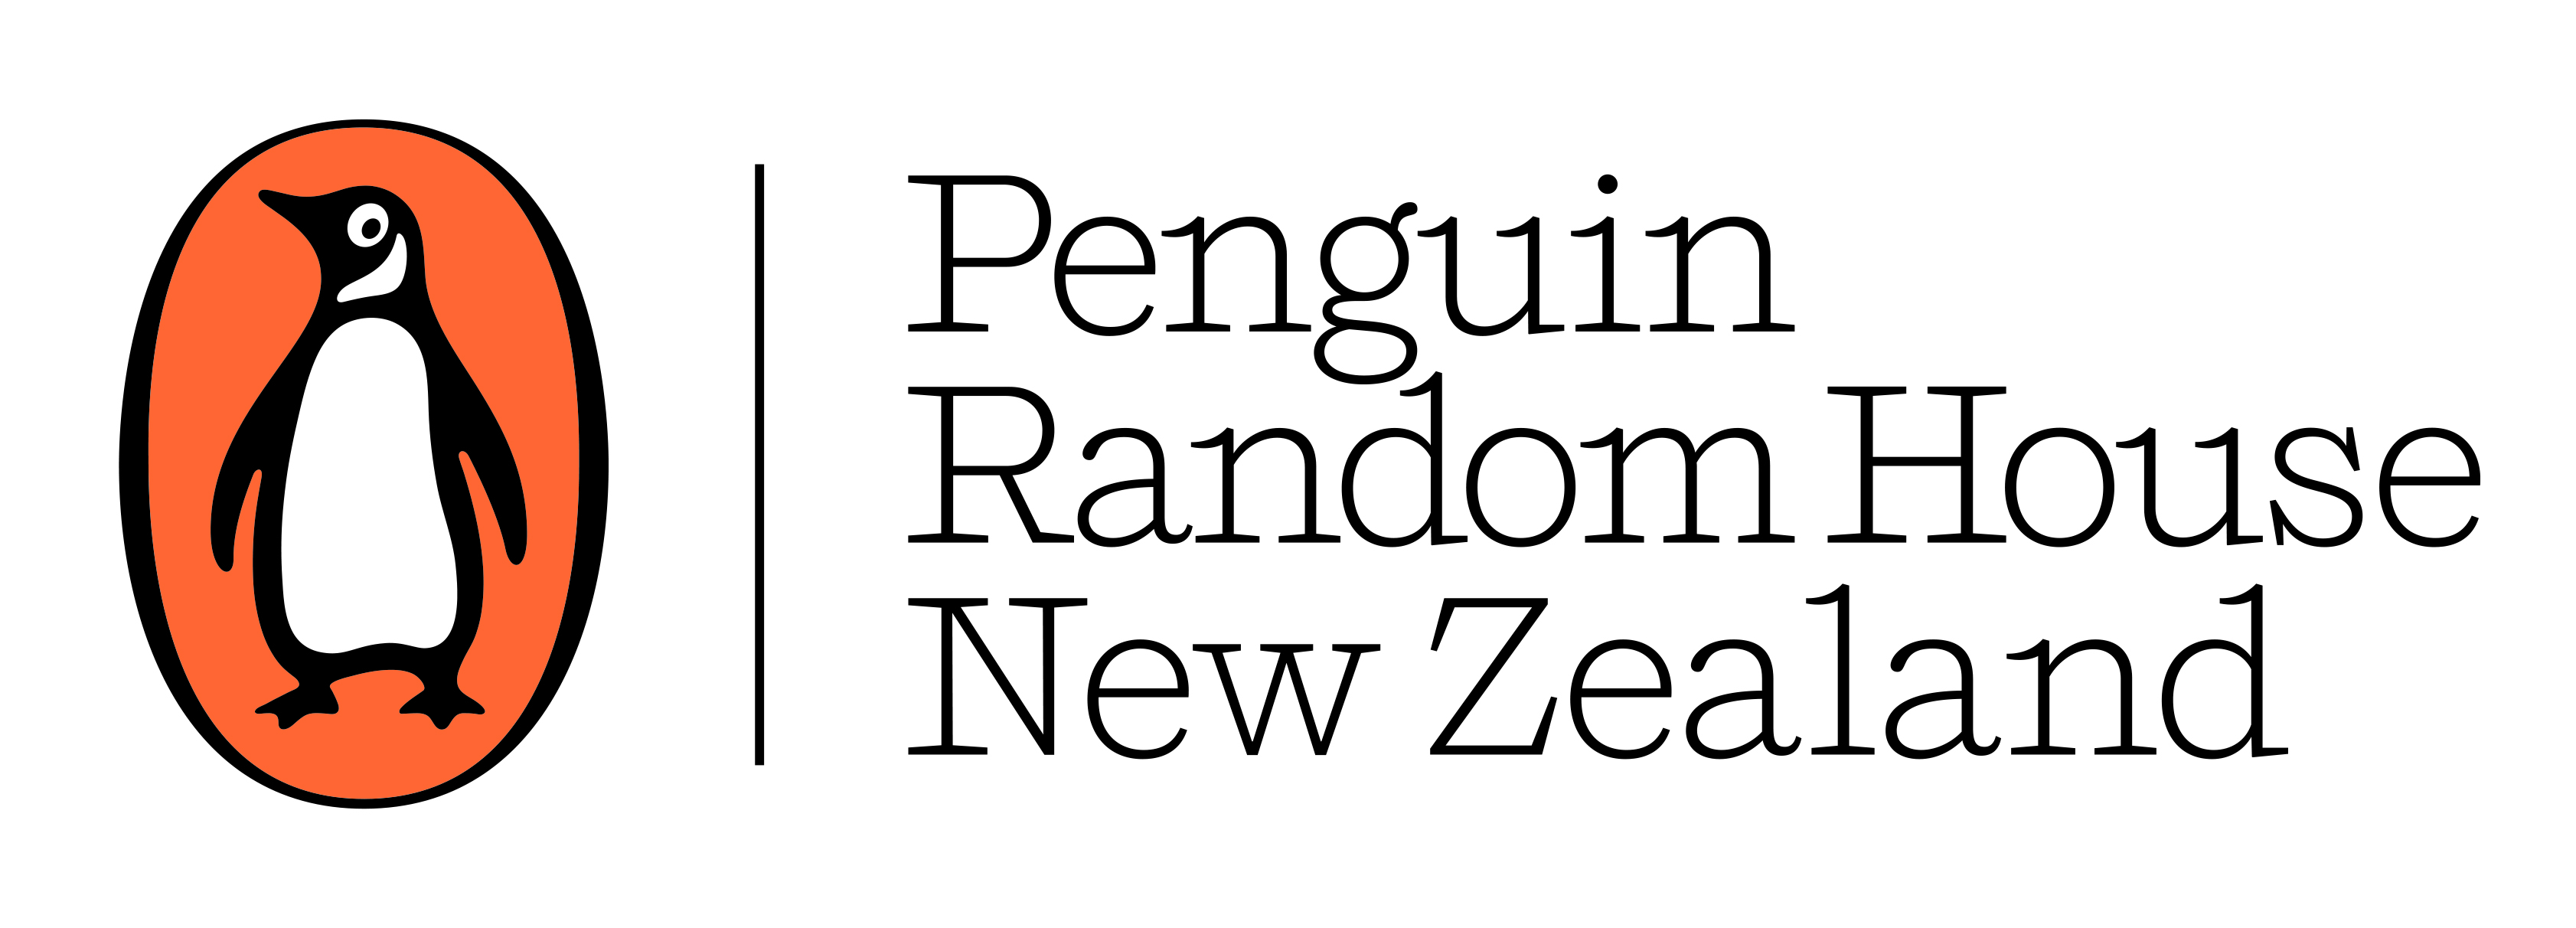 Penguin Random House New Zealand Limited